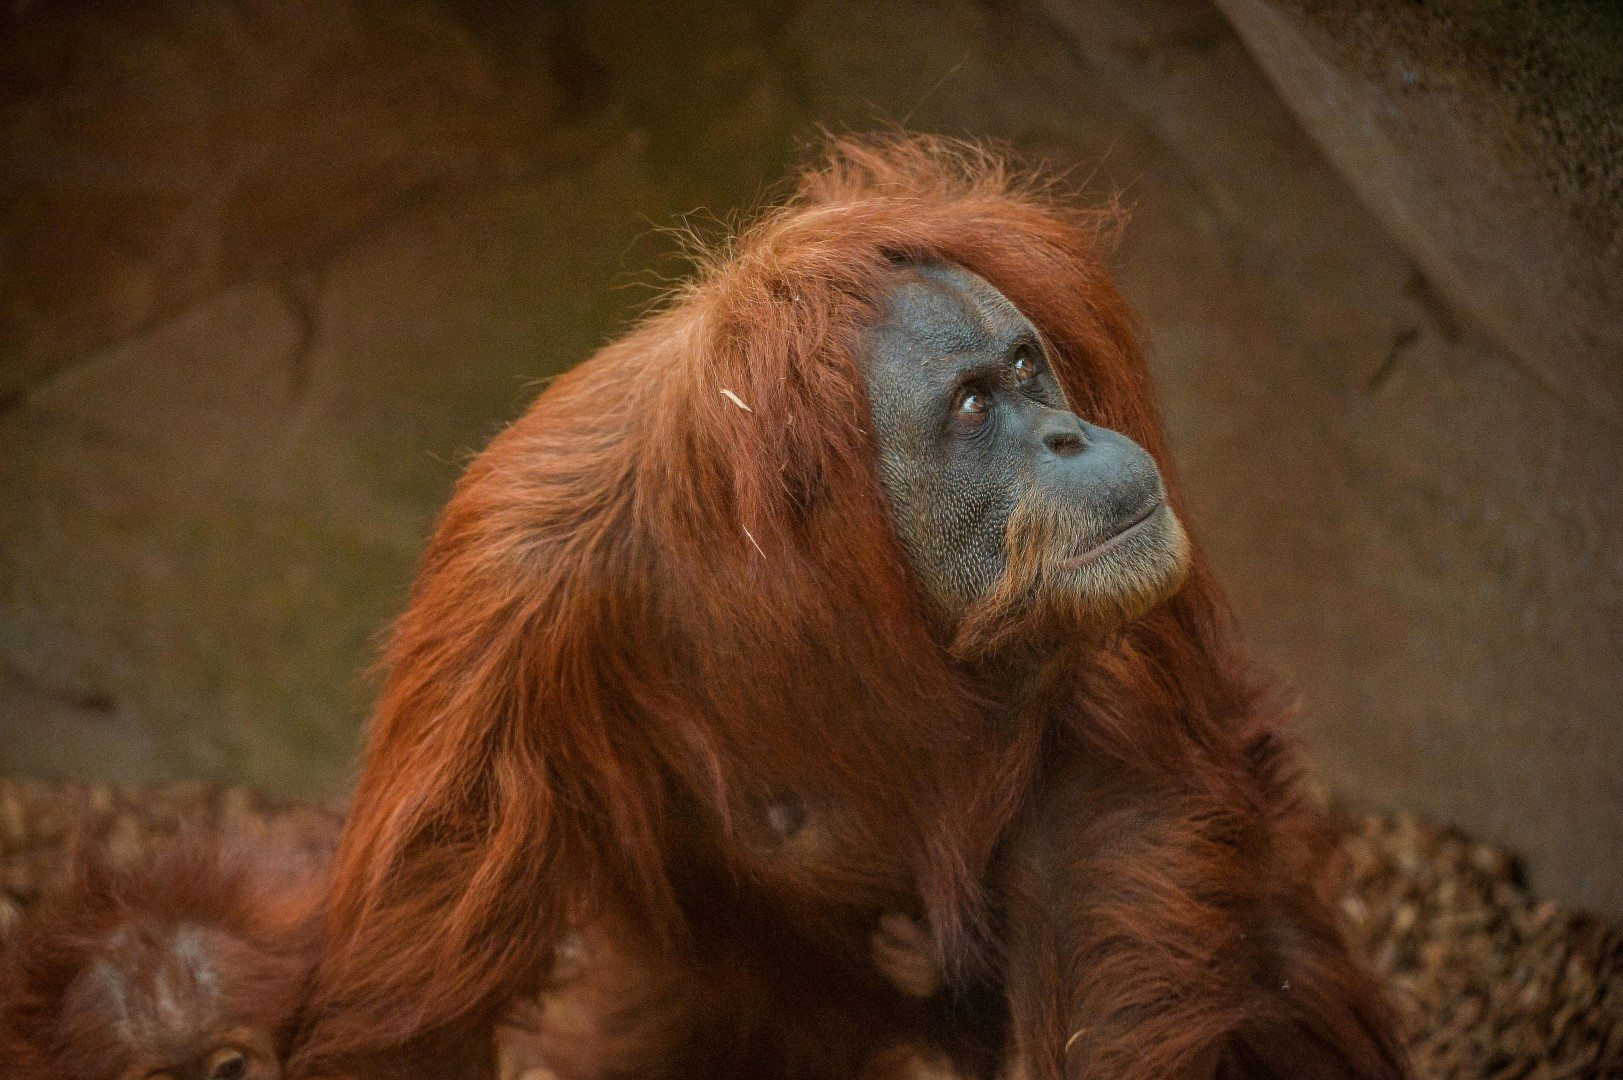 Sumatran orangutan at Chester Zoo